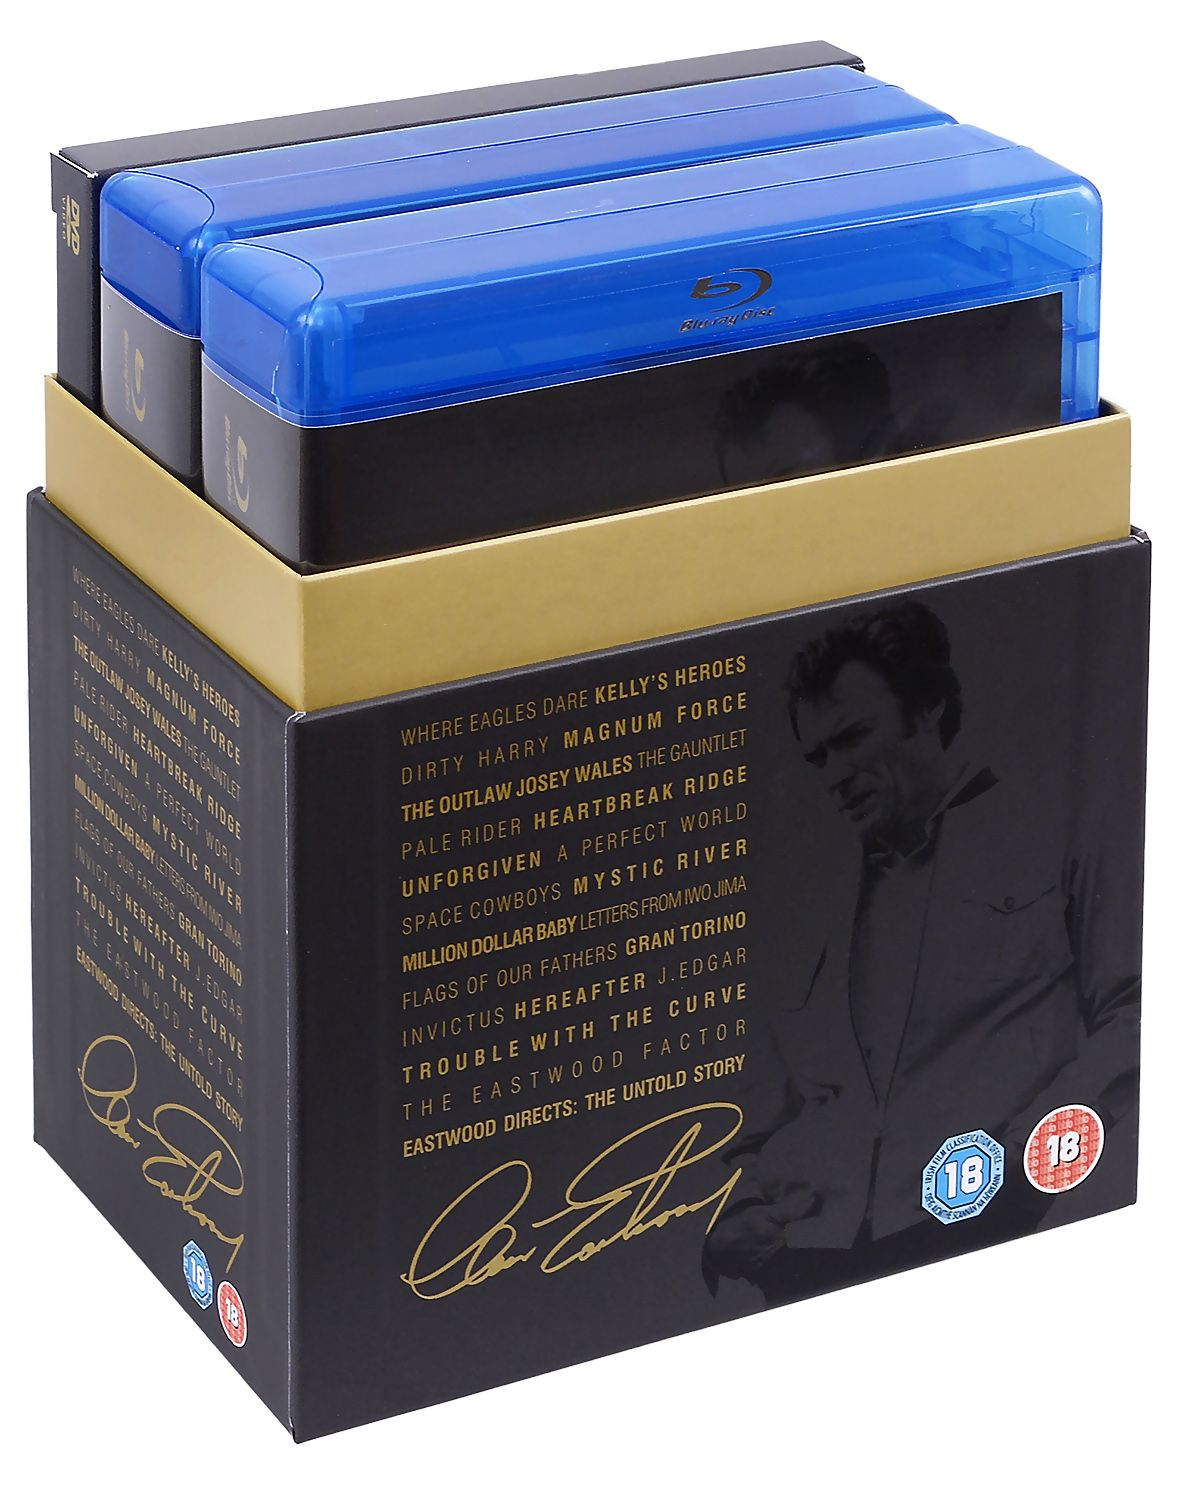 Clint Eastwood 20-Film Collection (Blu-Ray) - 7